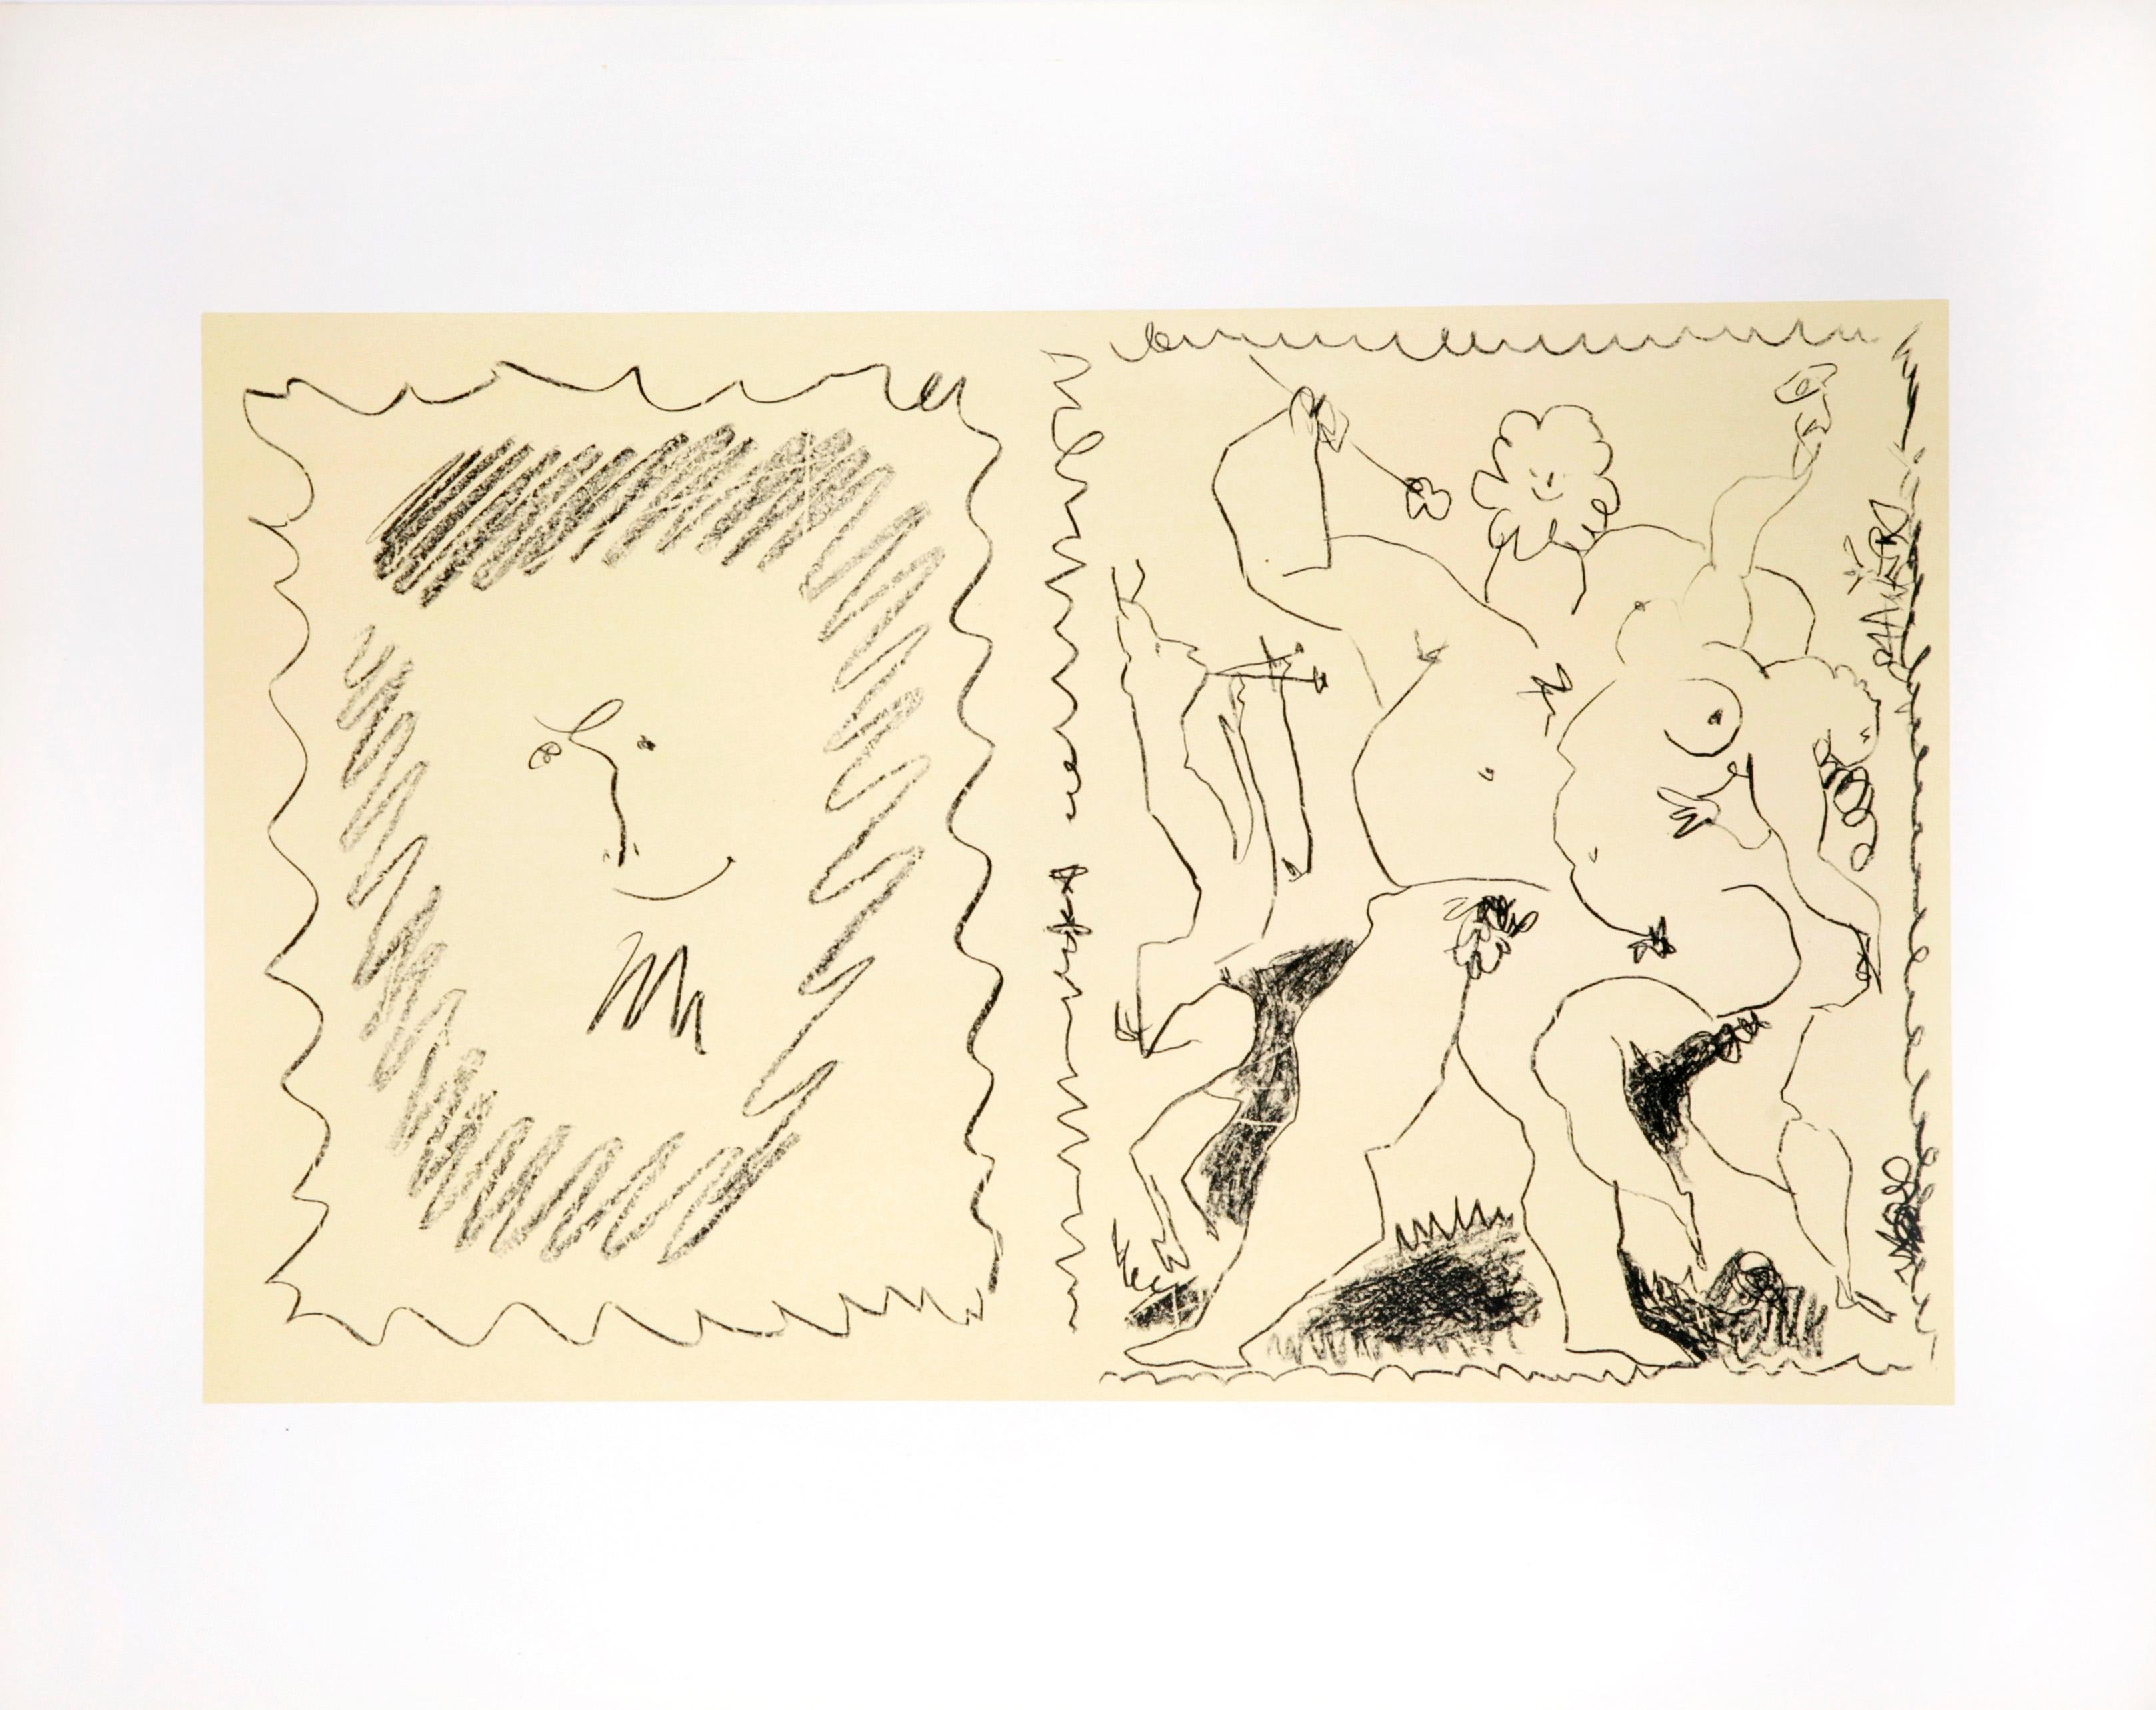 Bacchanal by Pablo Picasso - Lithograph 1955